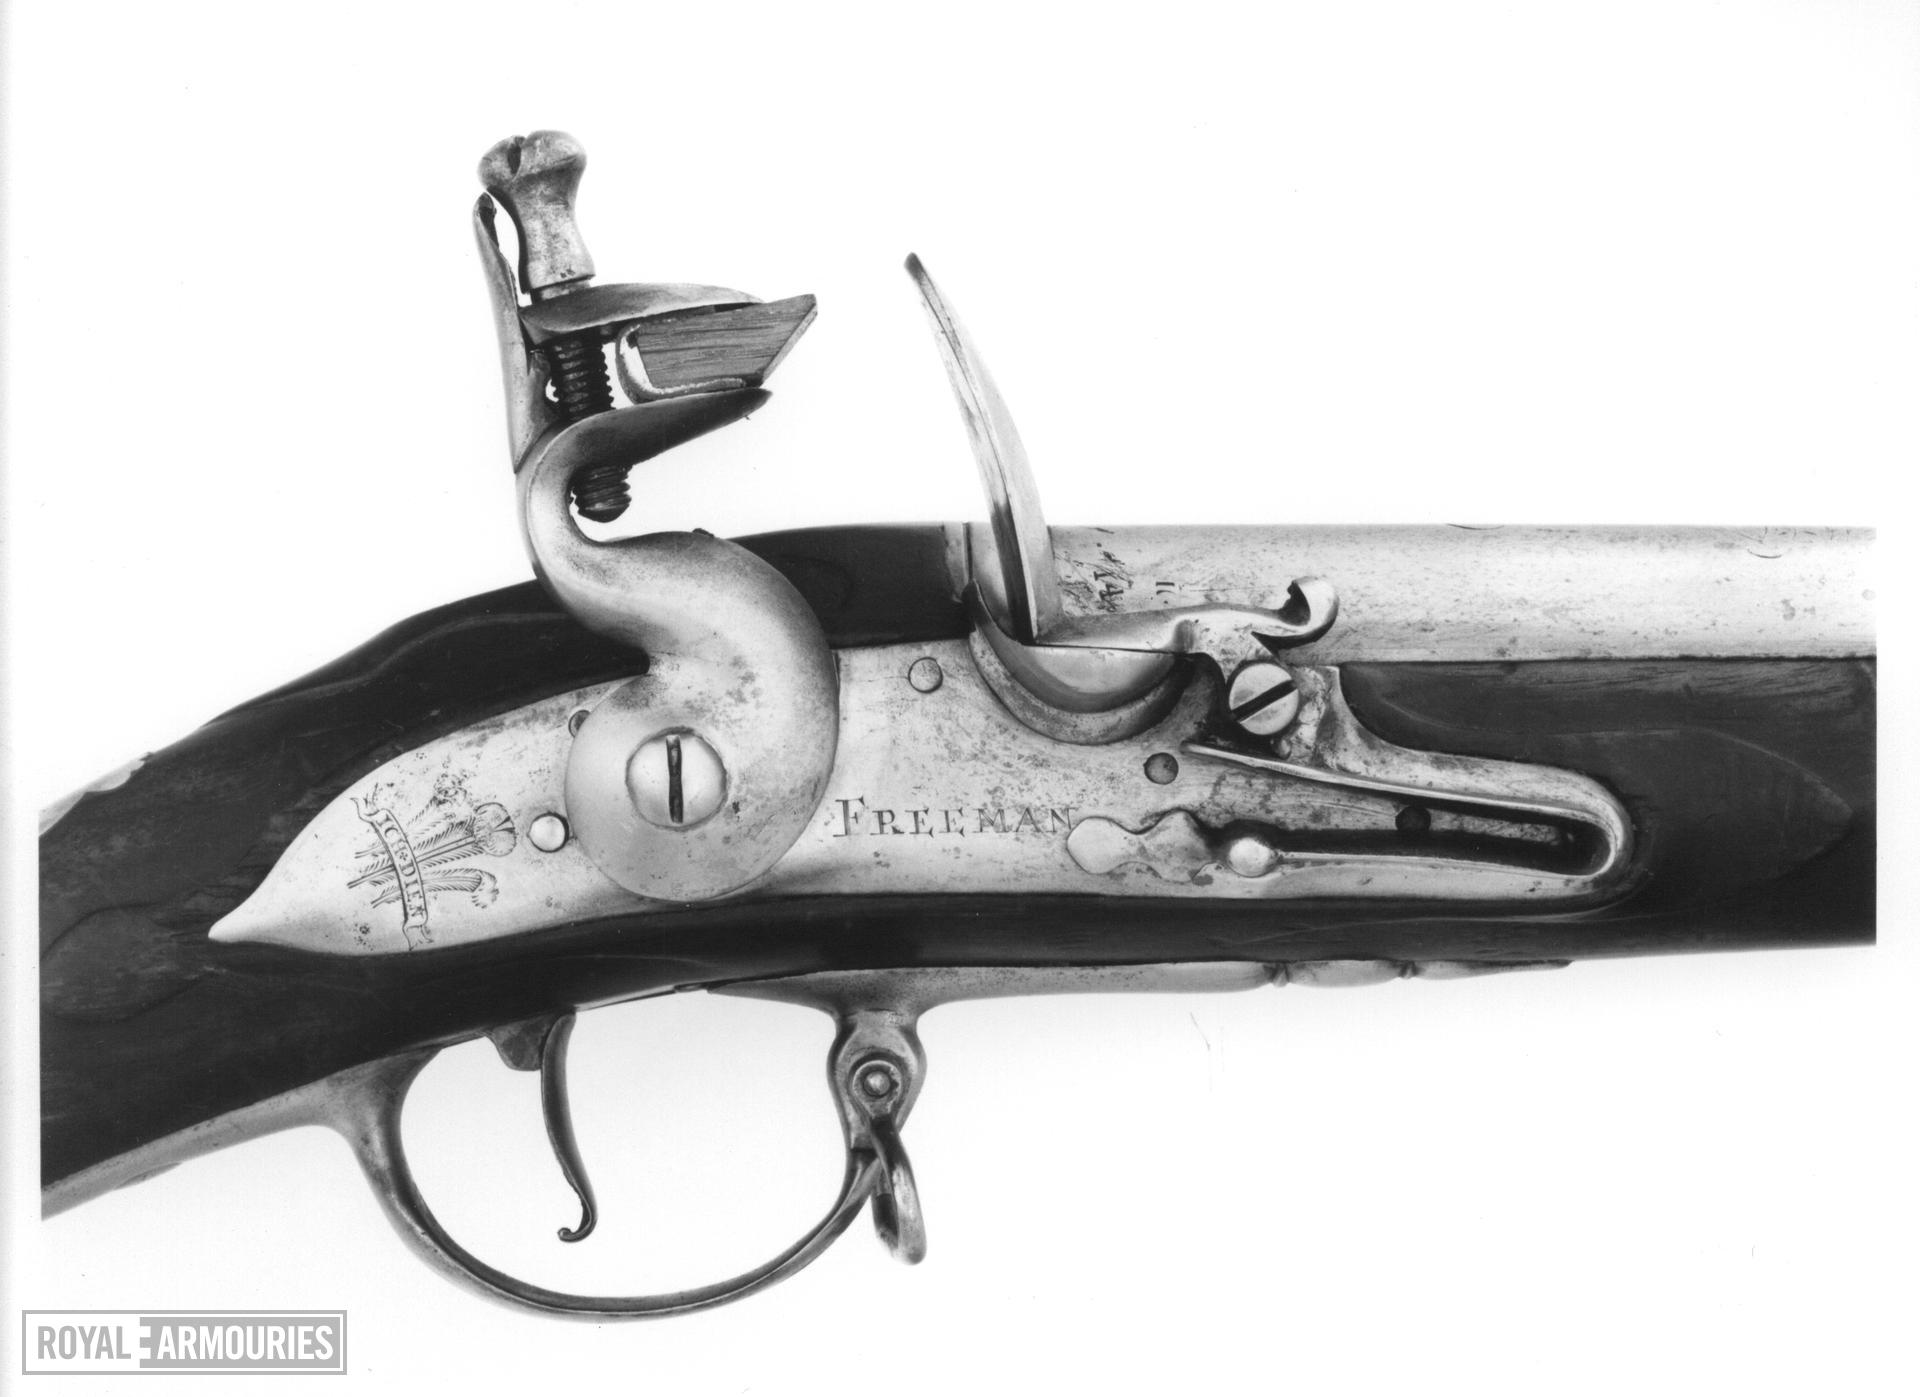 Flintlock muzzle-loading military musket Infantry musket for the Royal Welsh Fusiliers Lock by Freeman